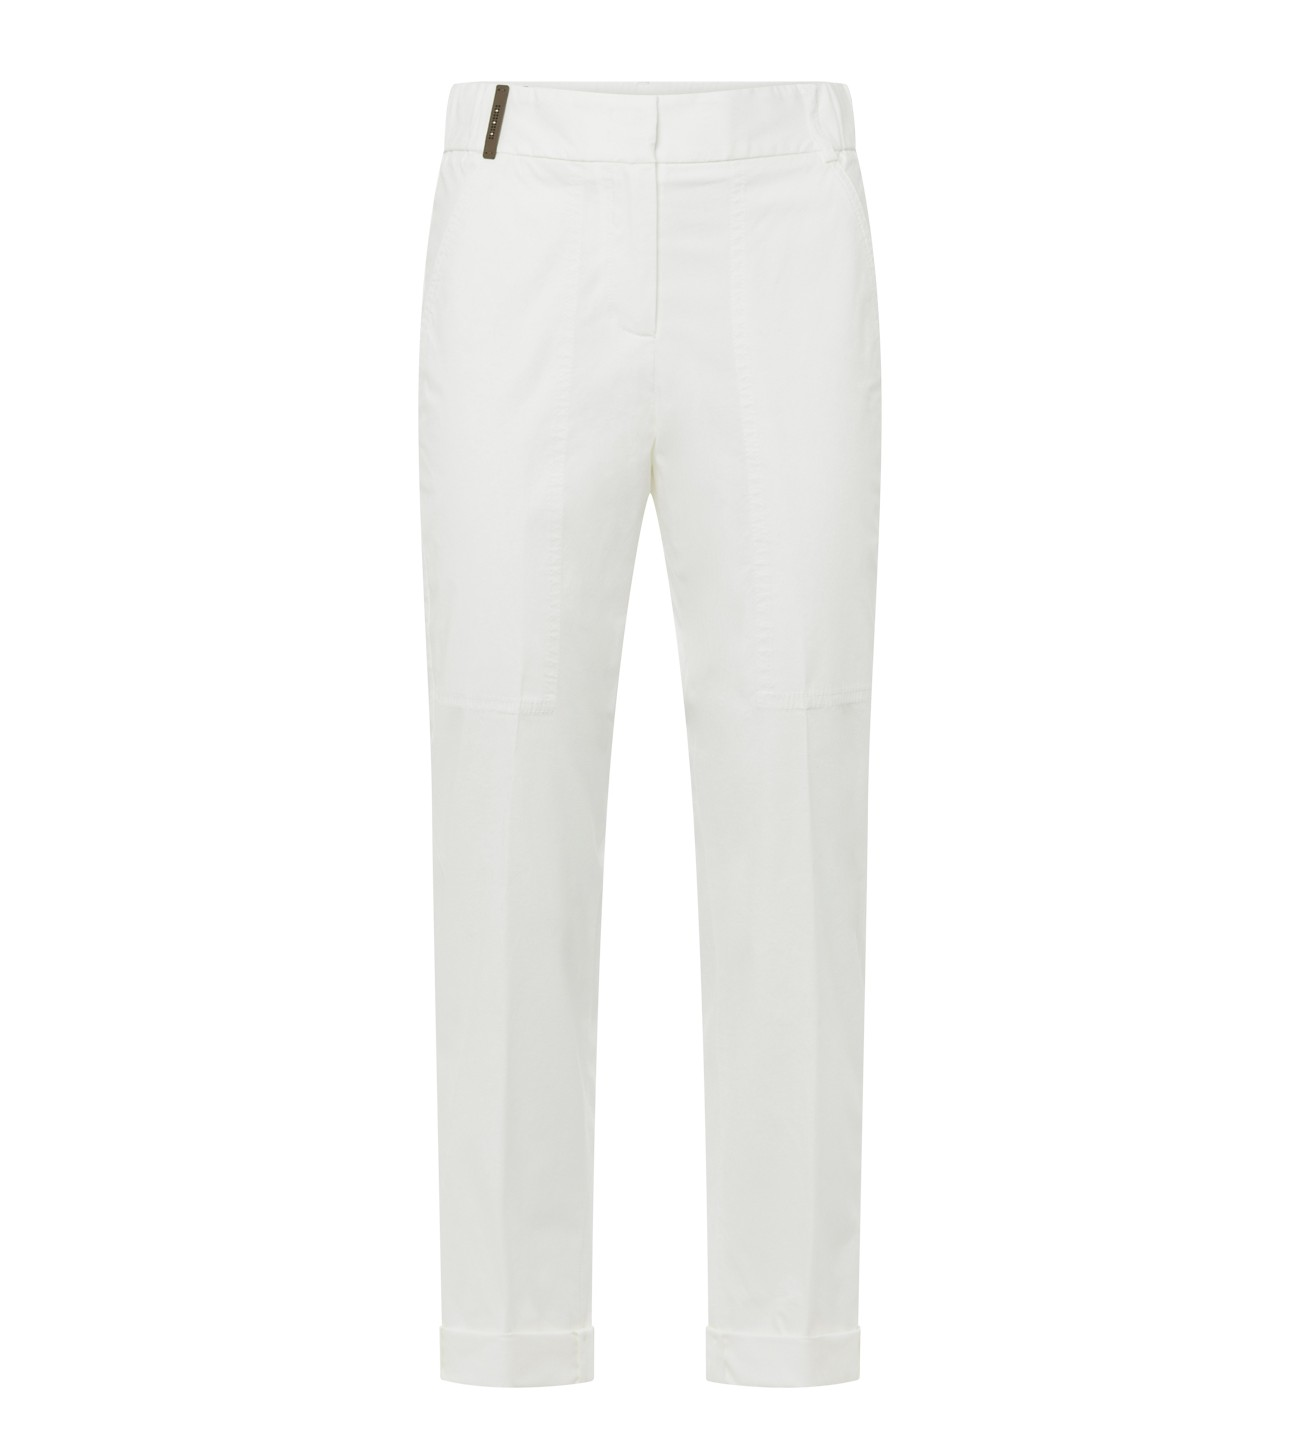 PESERICO_TECHNICAL_TROUSERS_WITH_STITCHED_POCKETS_MARIONA_FASHION_CLOTHING_WOMAN_SHOP_ONLINE_P04790L1